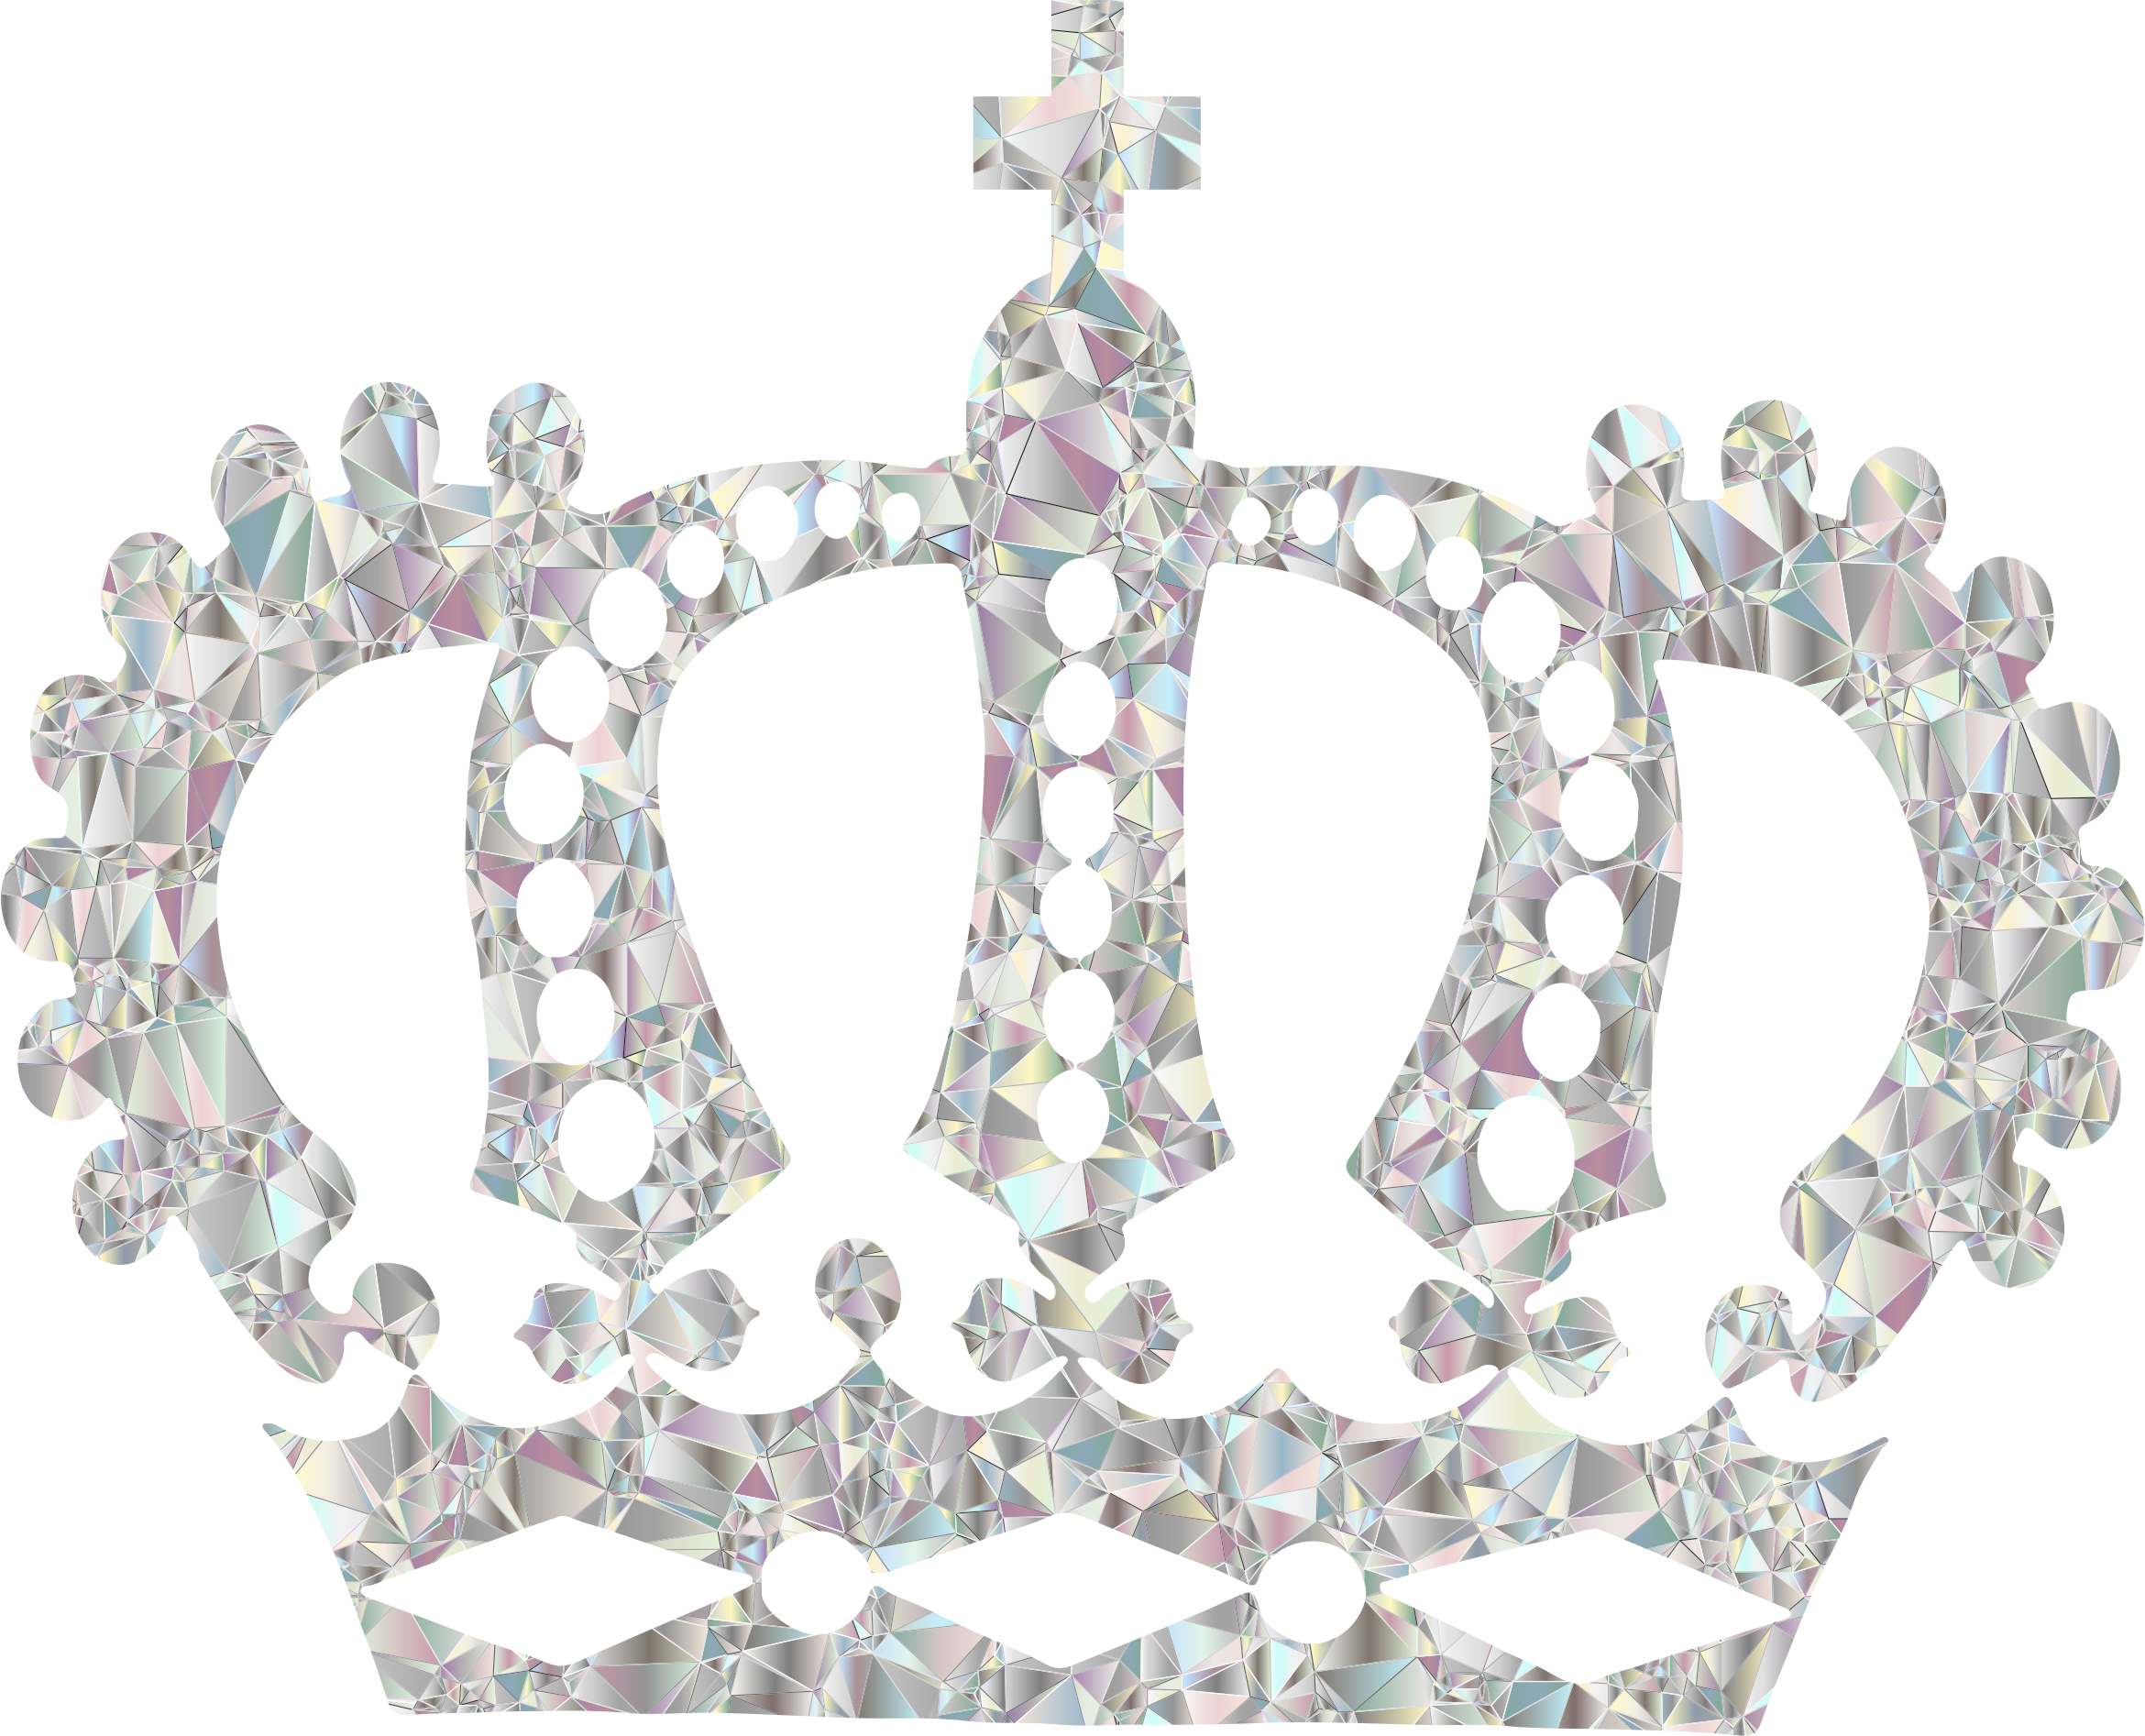 Png transparent background crown clipart svg free download Clipart - Crystal Royal Crown No Background svg free download